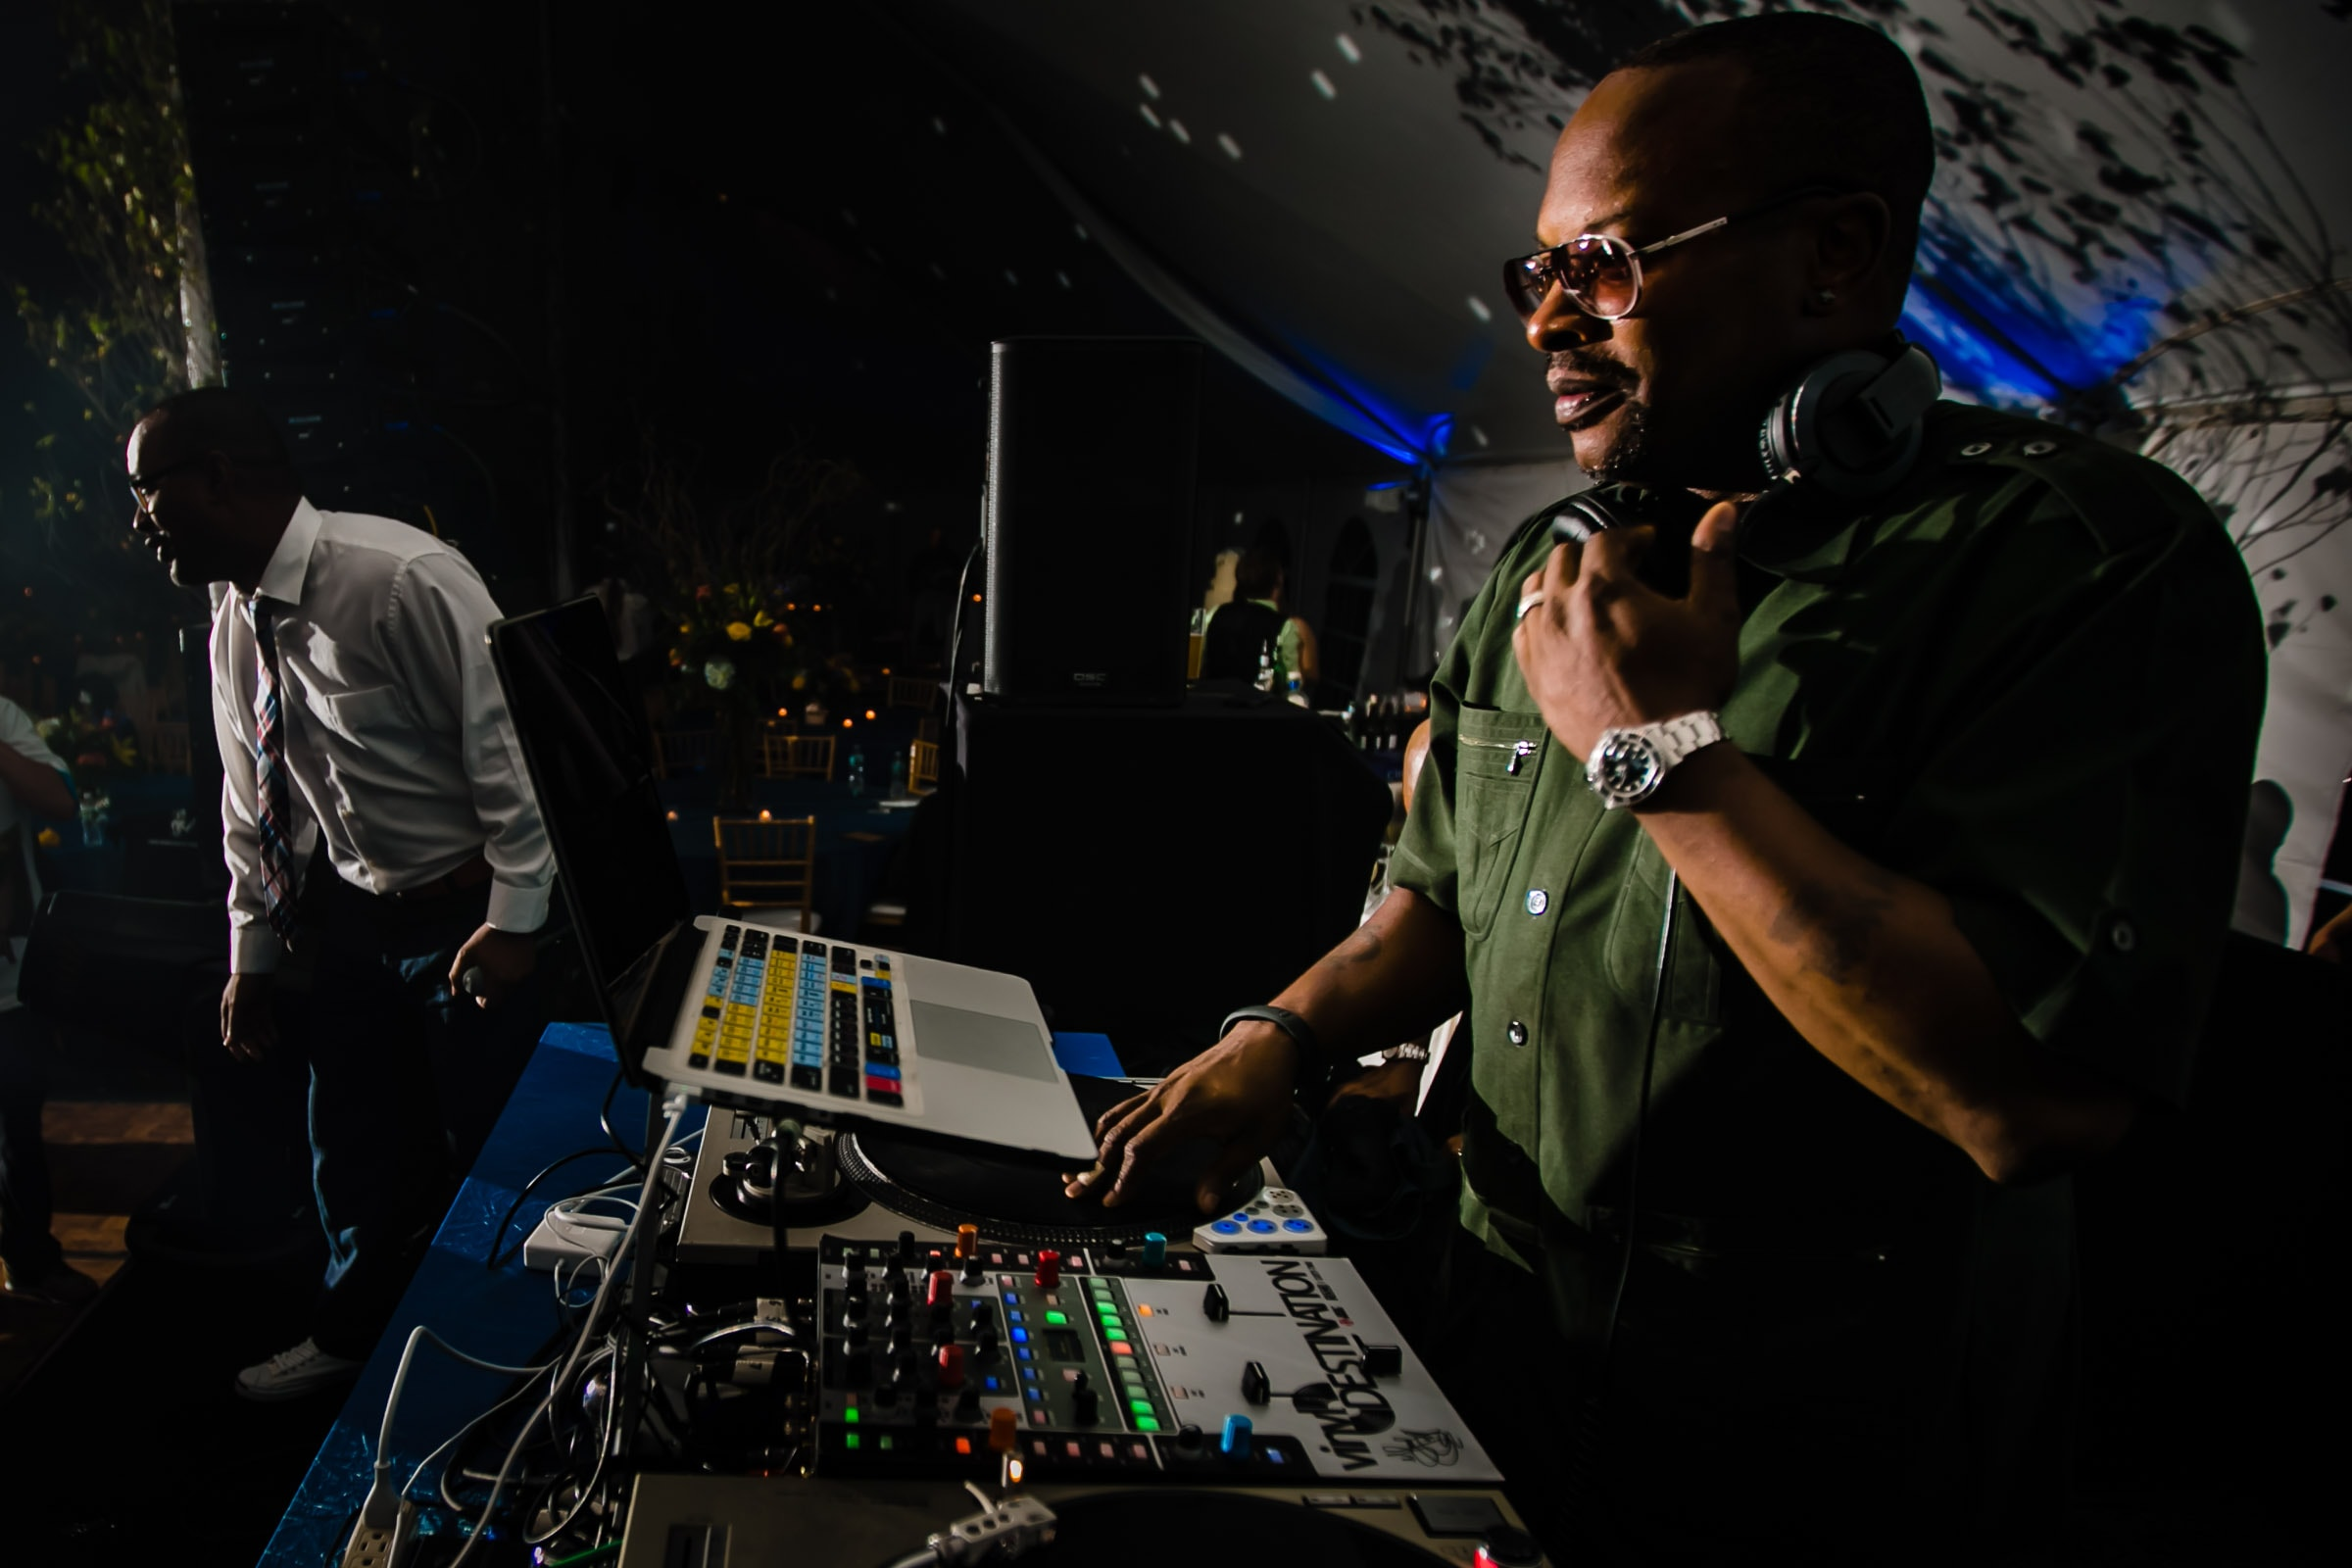 DJ JAZZY JEFF playing music at a Trapp Family Lodge wedding reception in Stowe, Vermont.